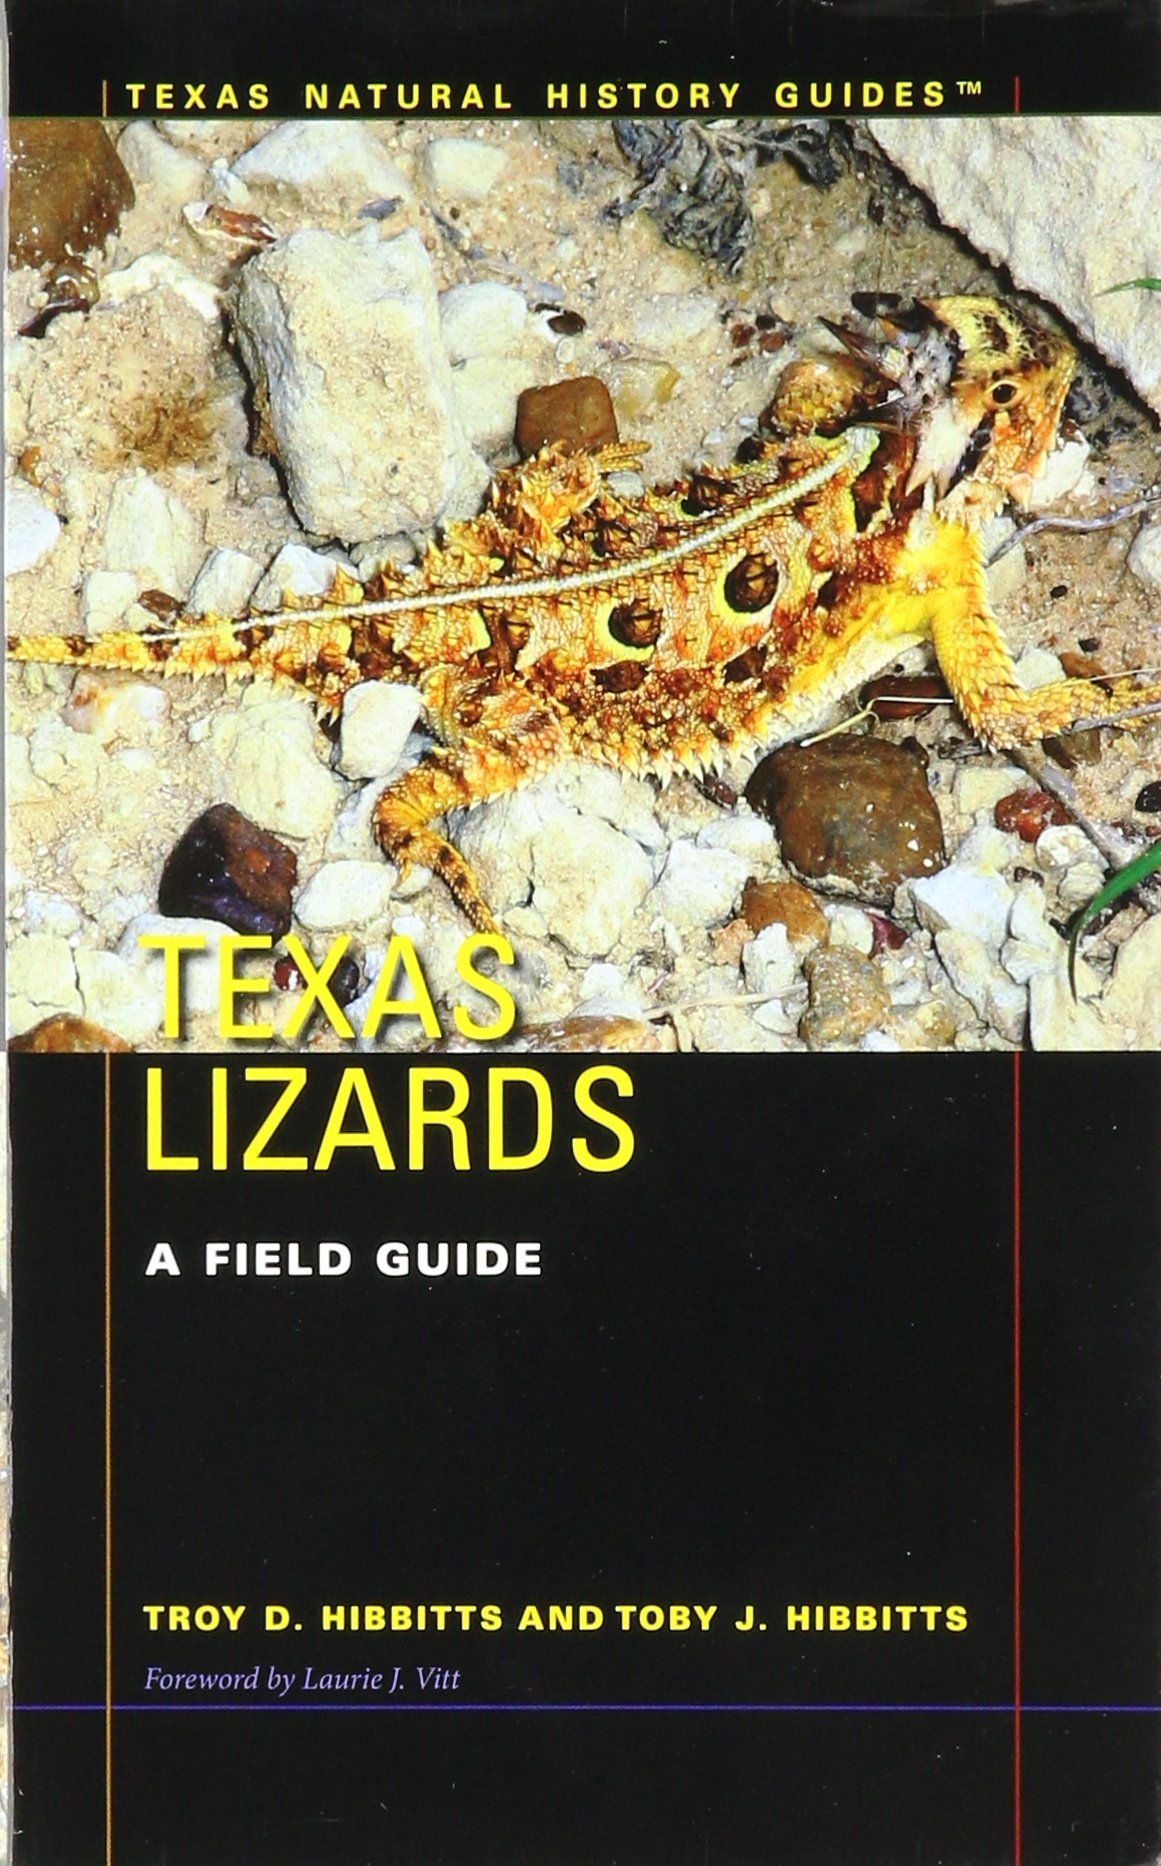 Texas Lizards: A Field Guide (Texas Natural History Guides™)